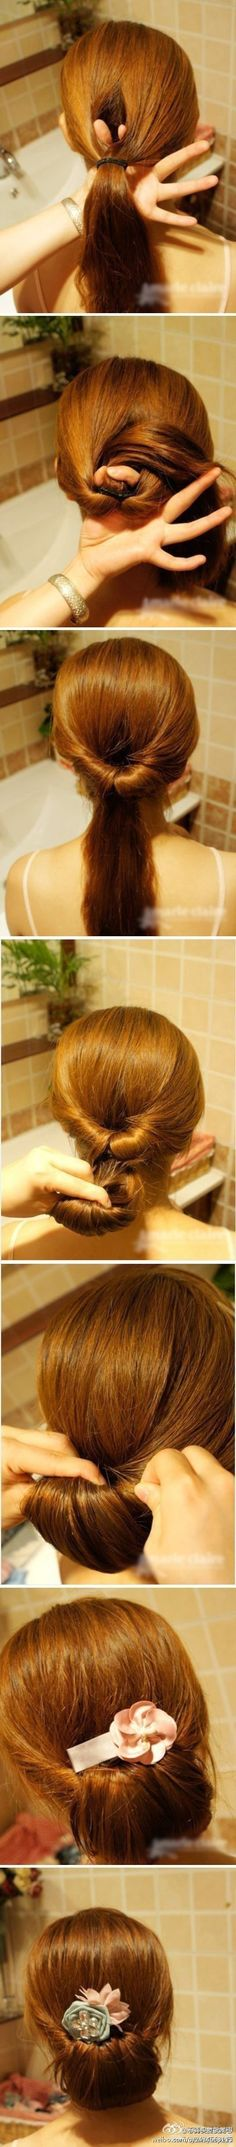 Cute and easy hairdo...I'll have to try this one for the office.